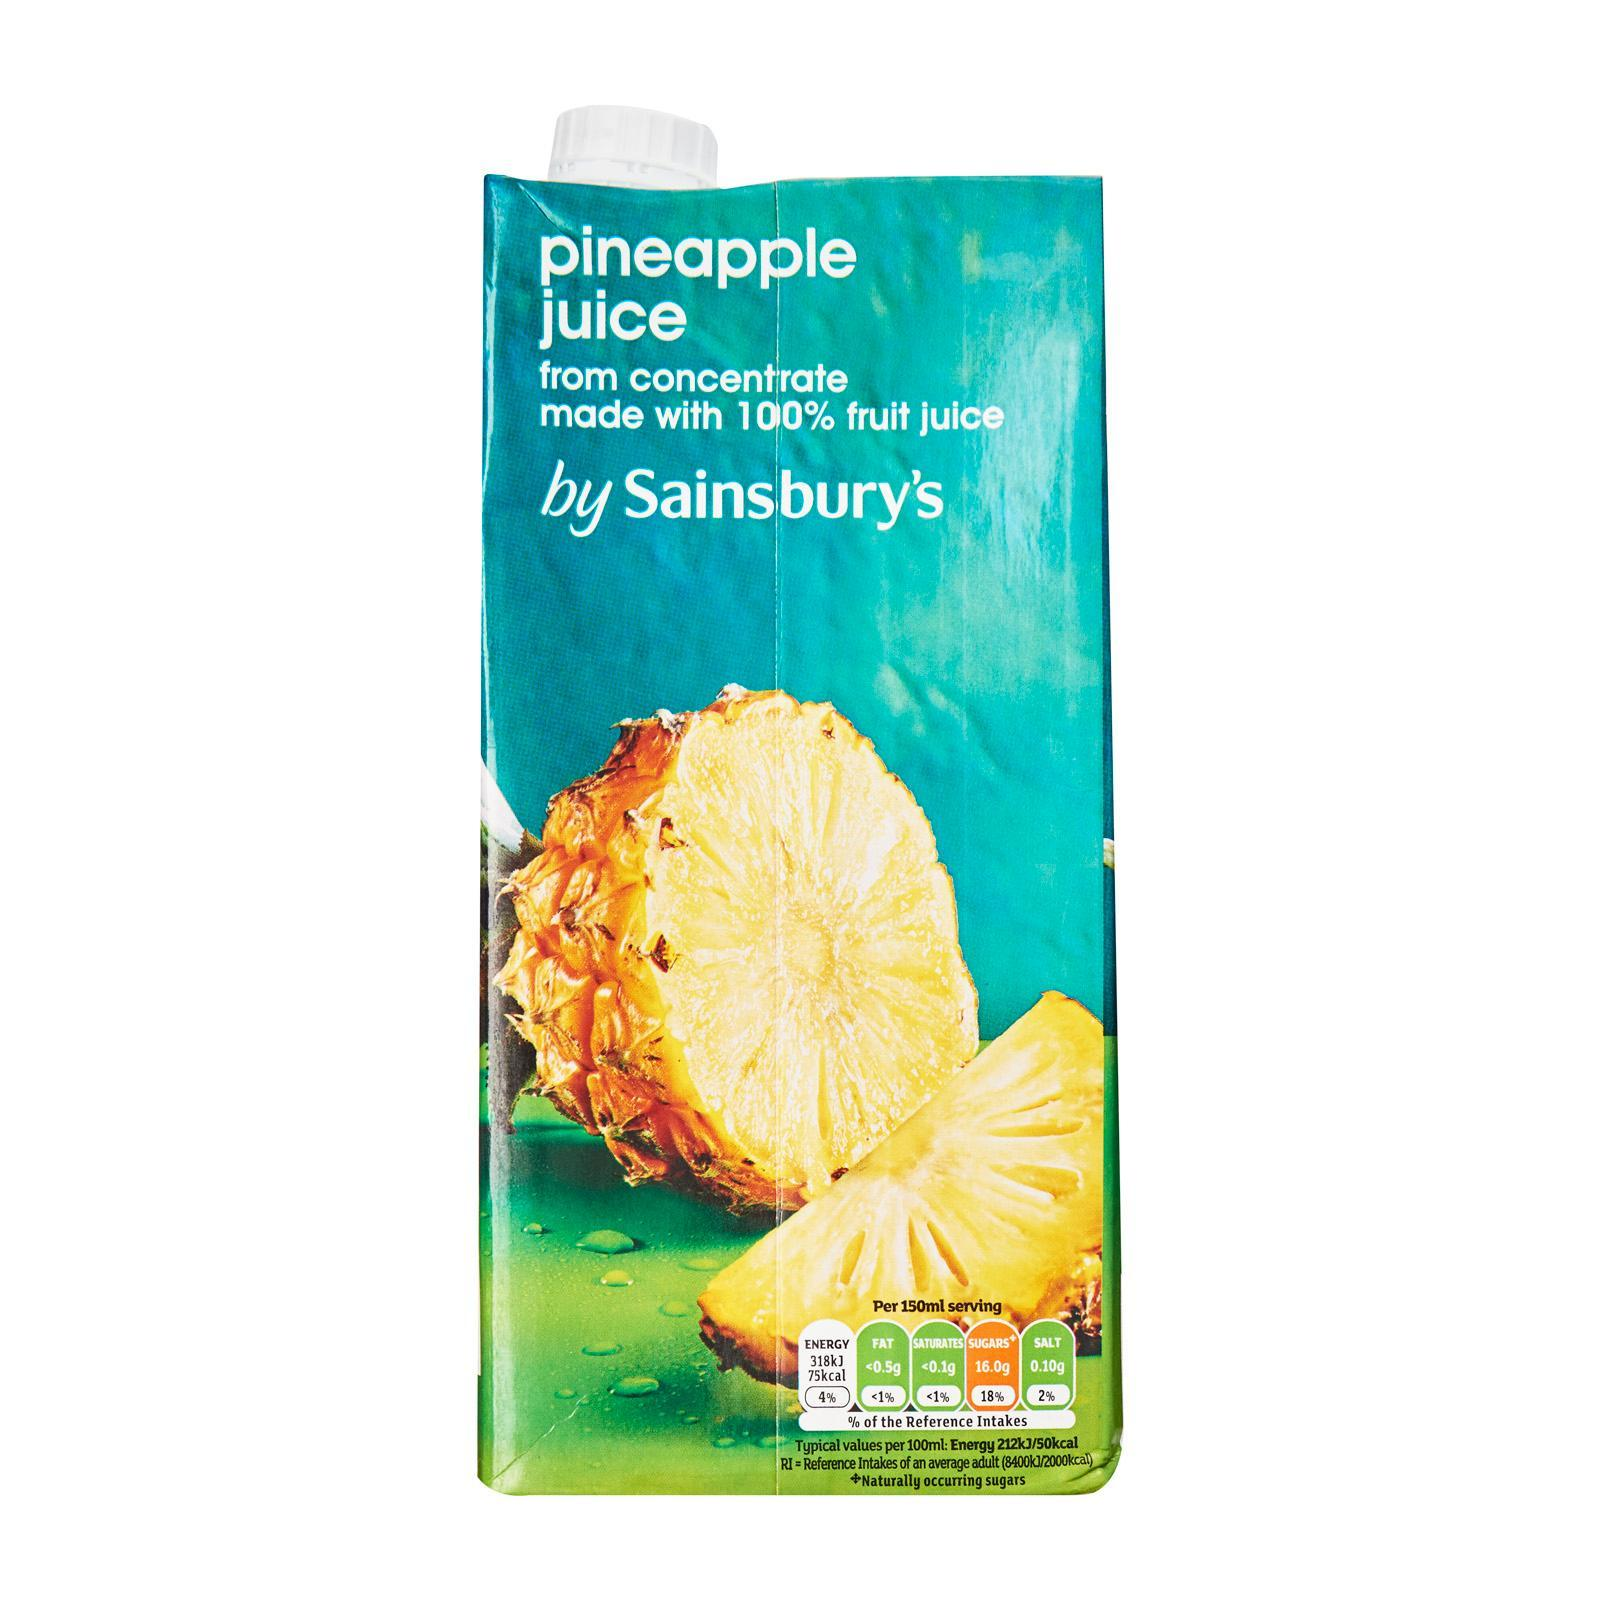 Sainsbury's Pineapple Juice From Concentrate